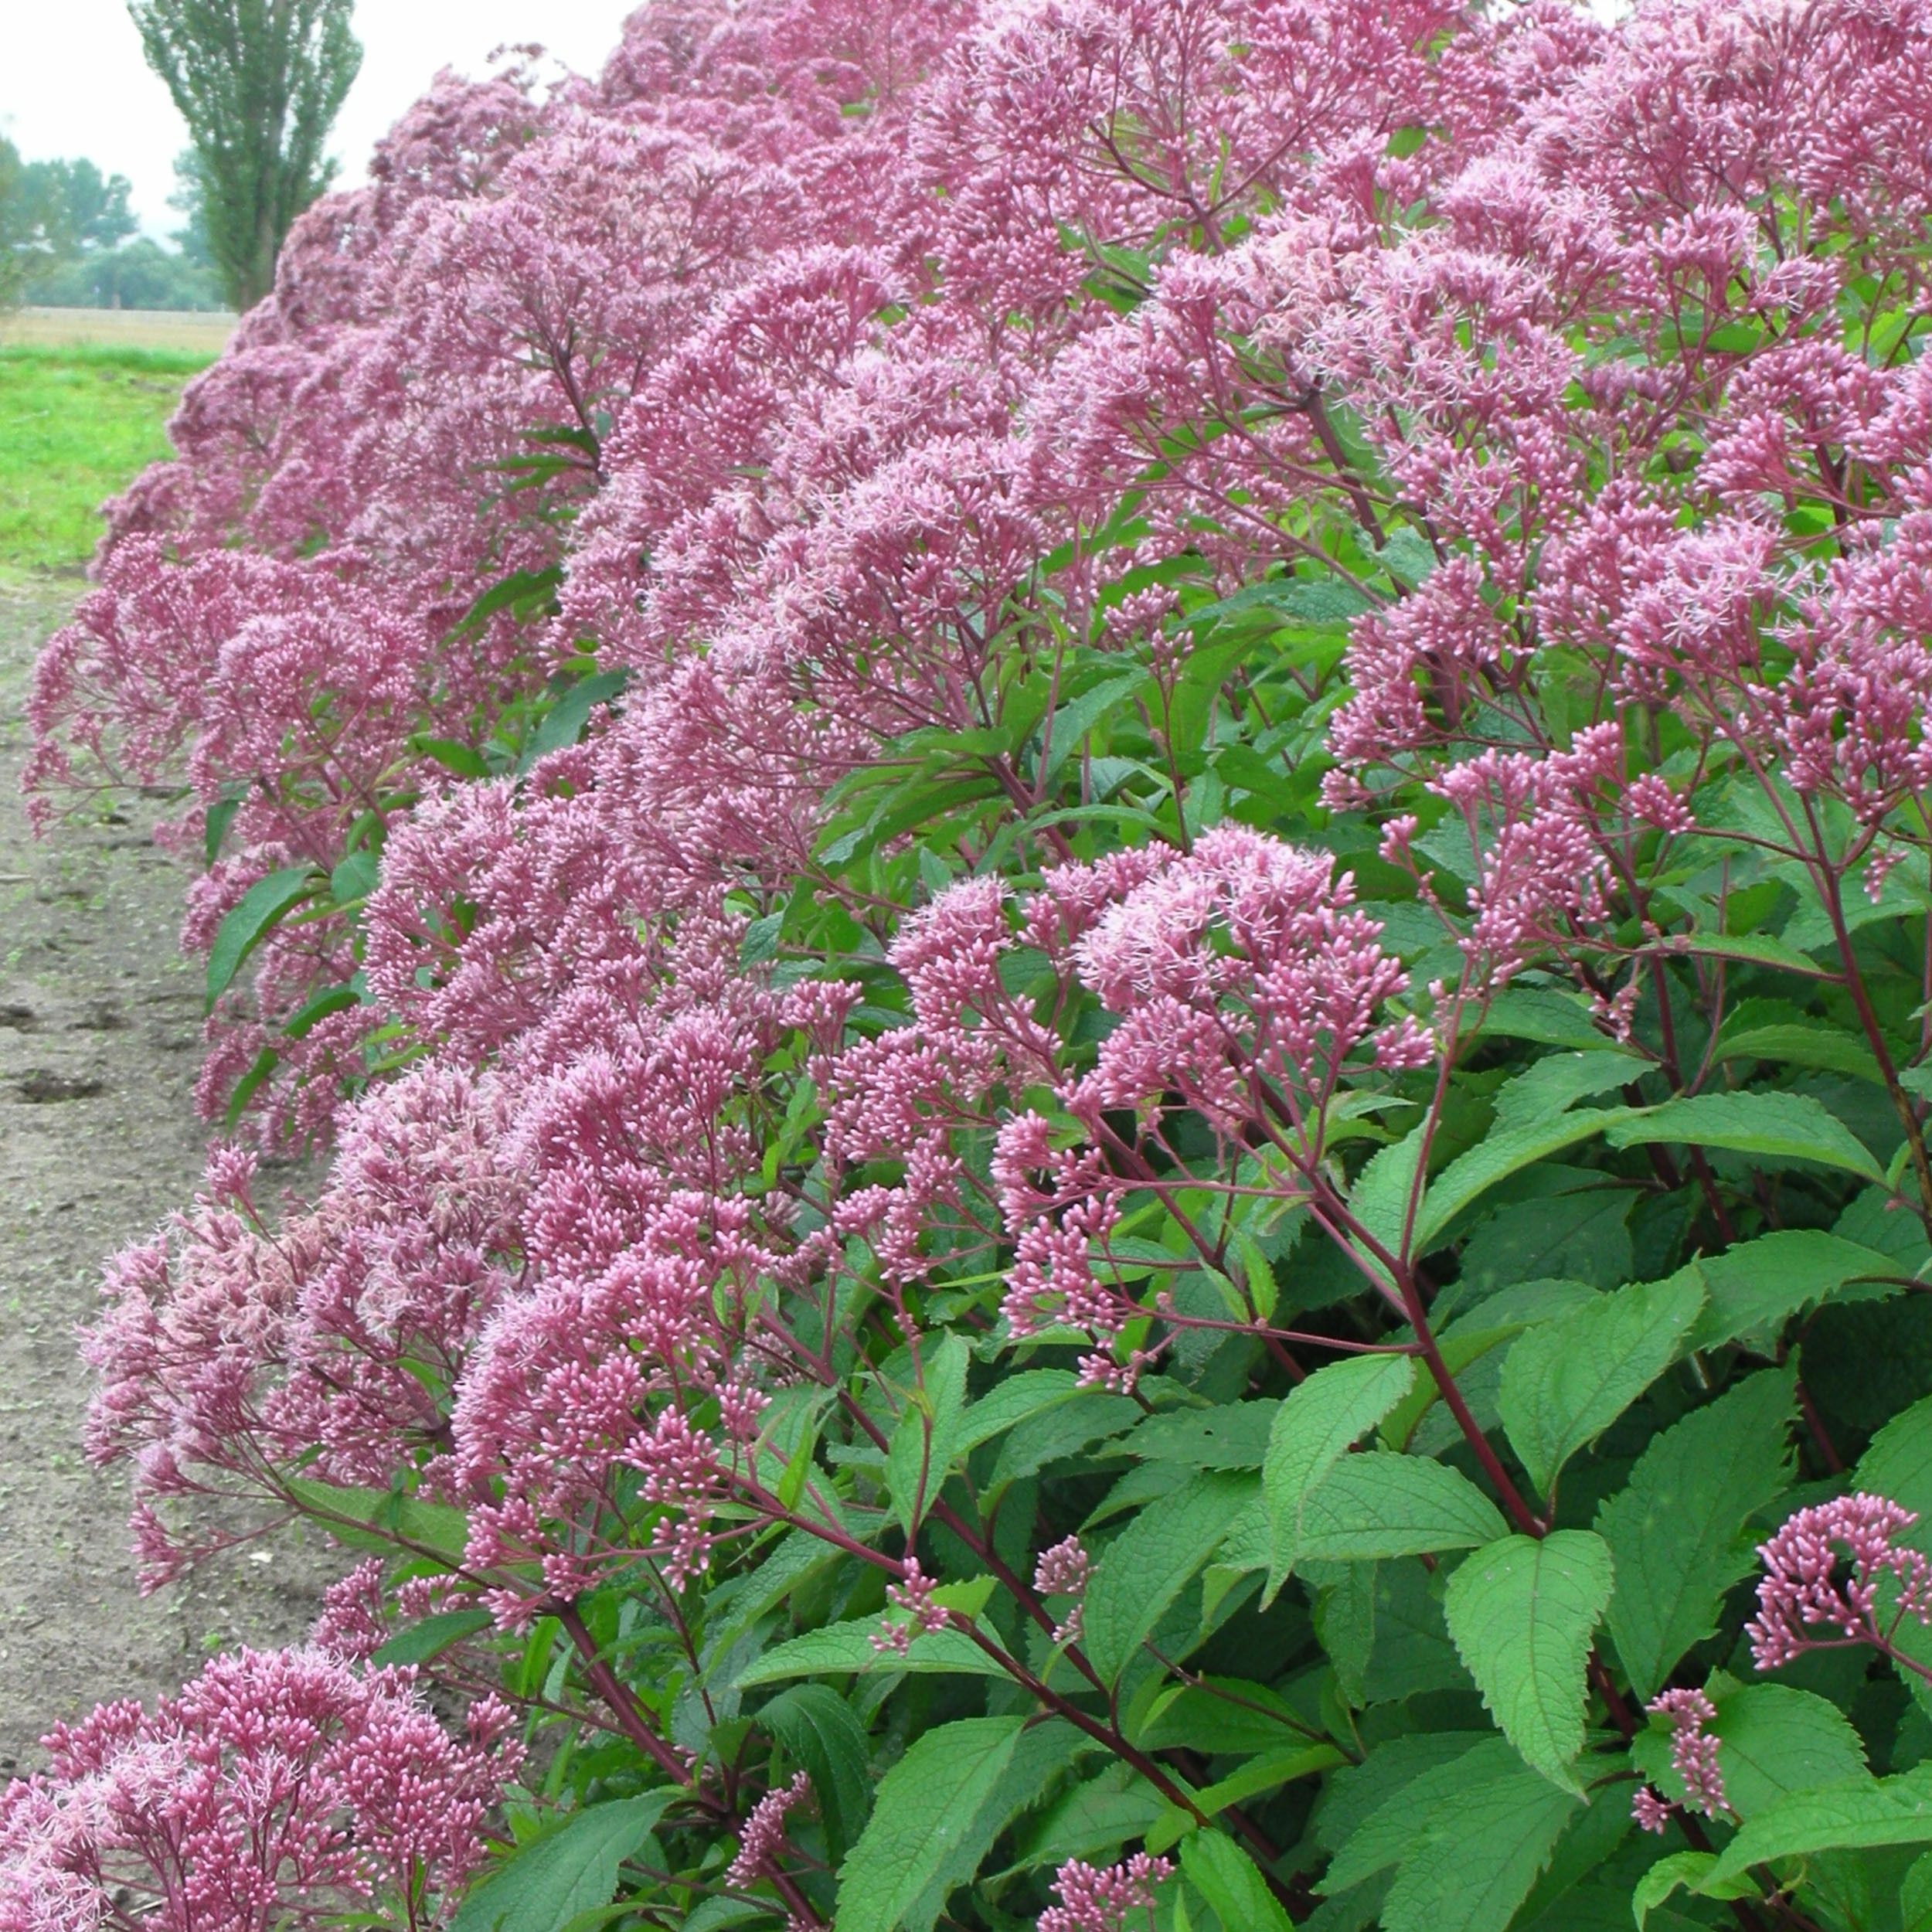 eupatorium fistulosum 39 atropurpureum 39 garten wasserdost. Black Bedroom Furniture Sets. Home Design Ideas